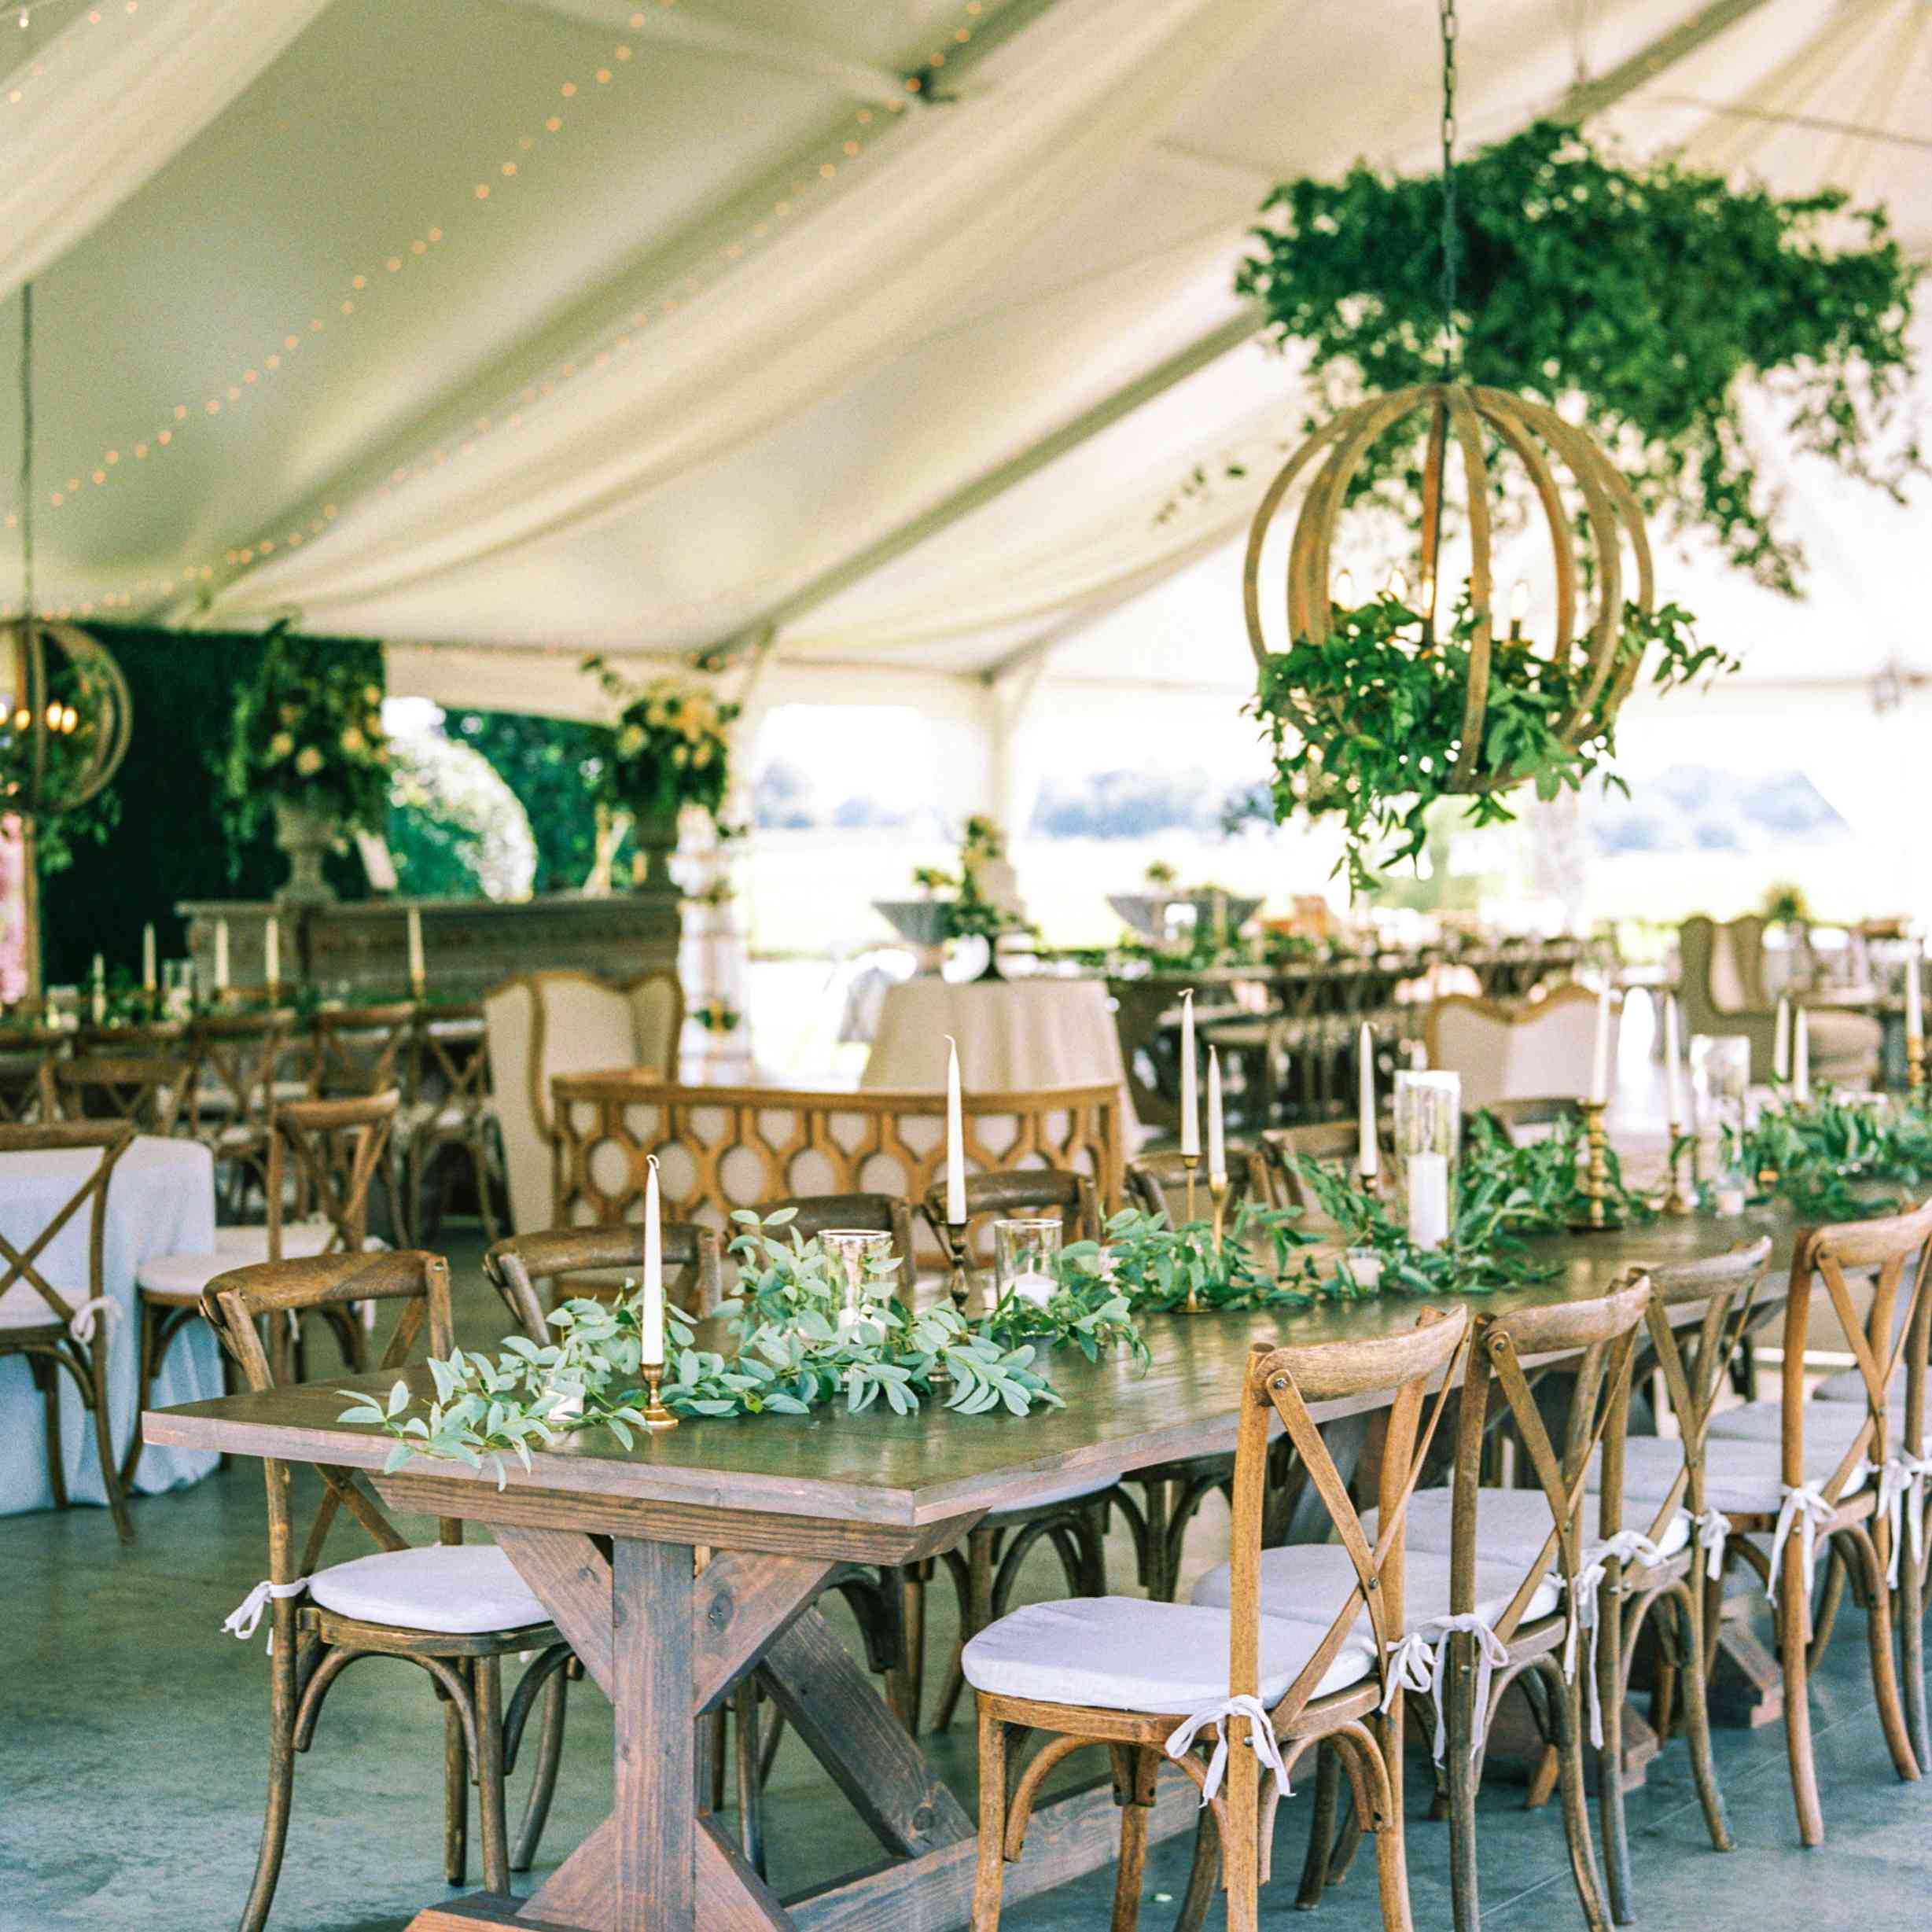 A rustic tent with greenery and natural wood